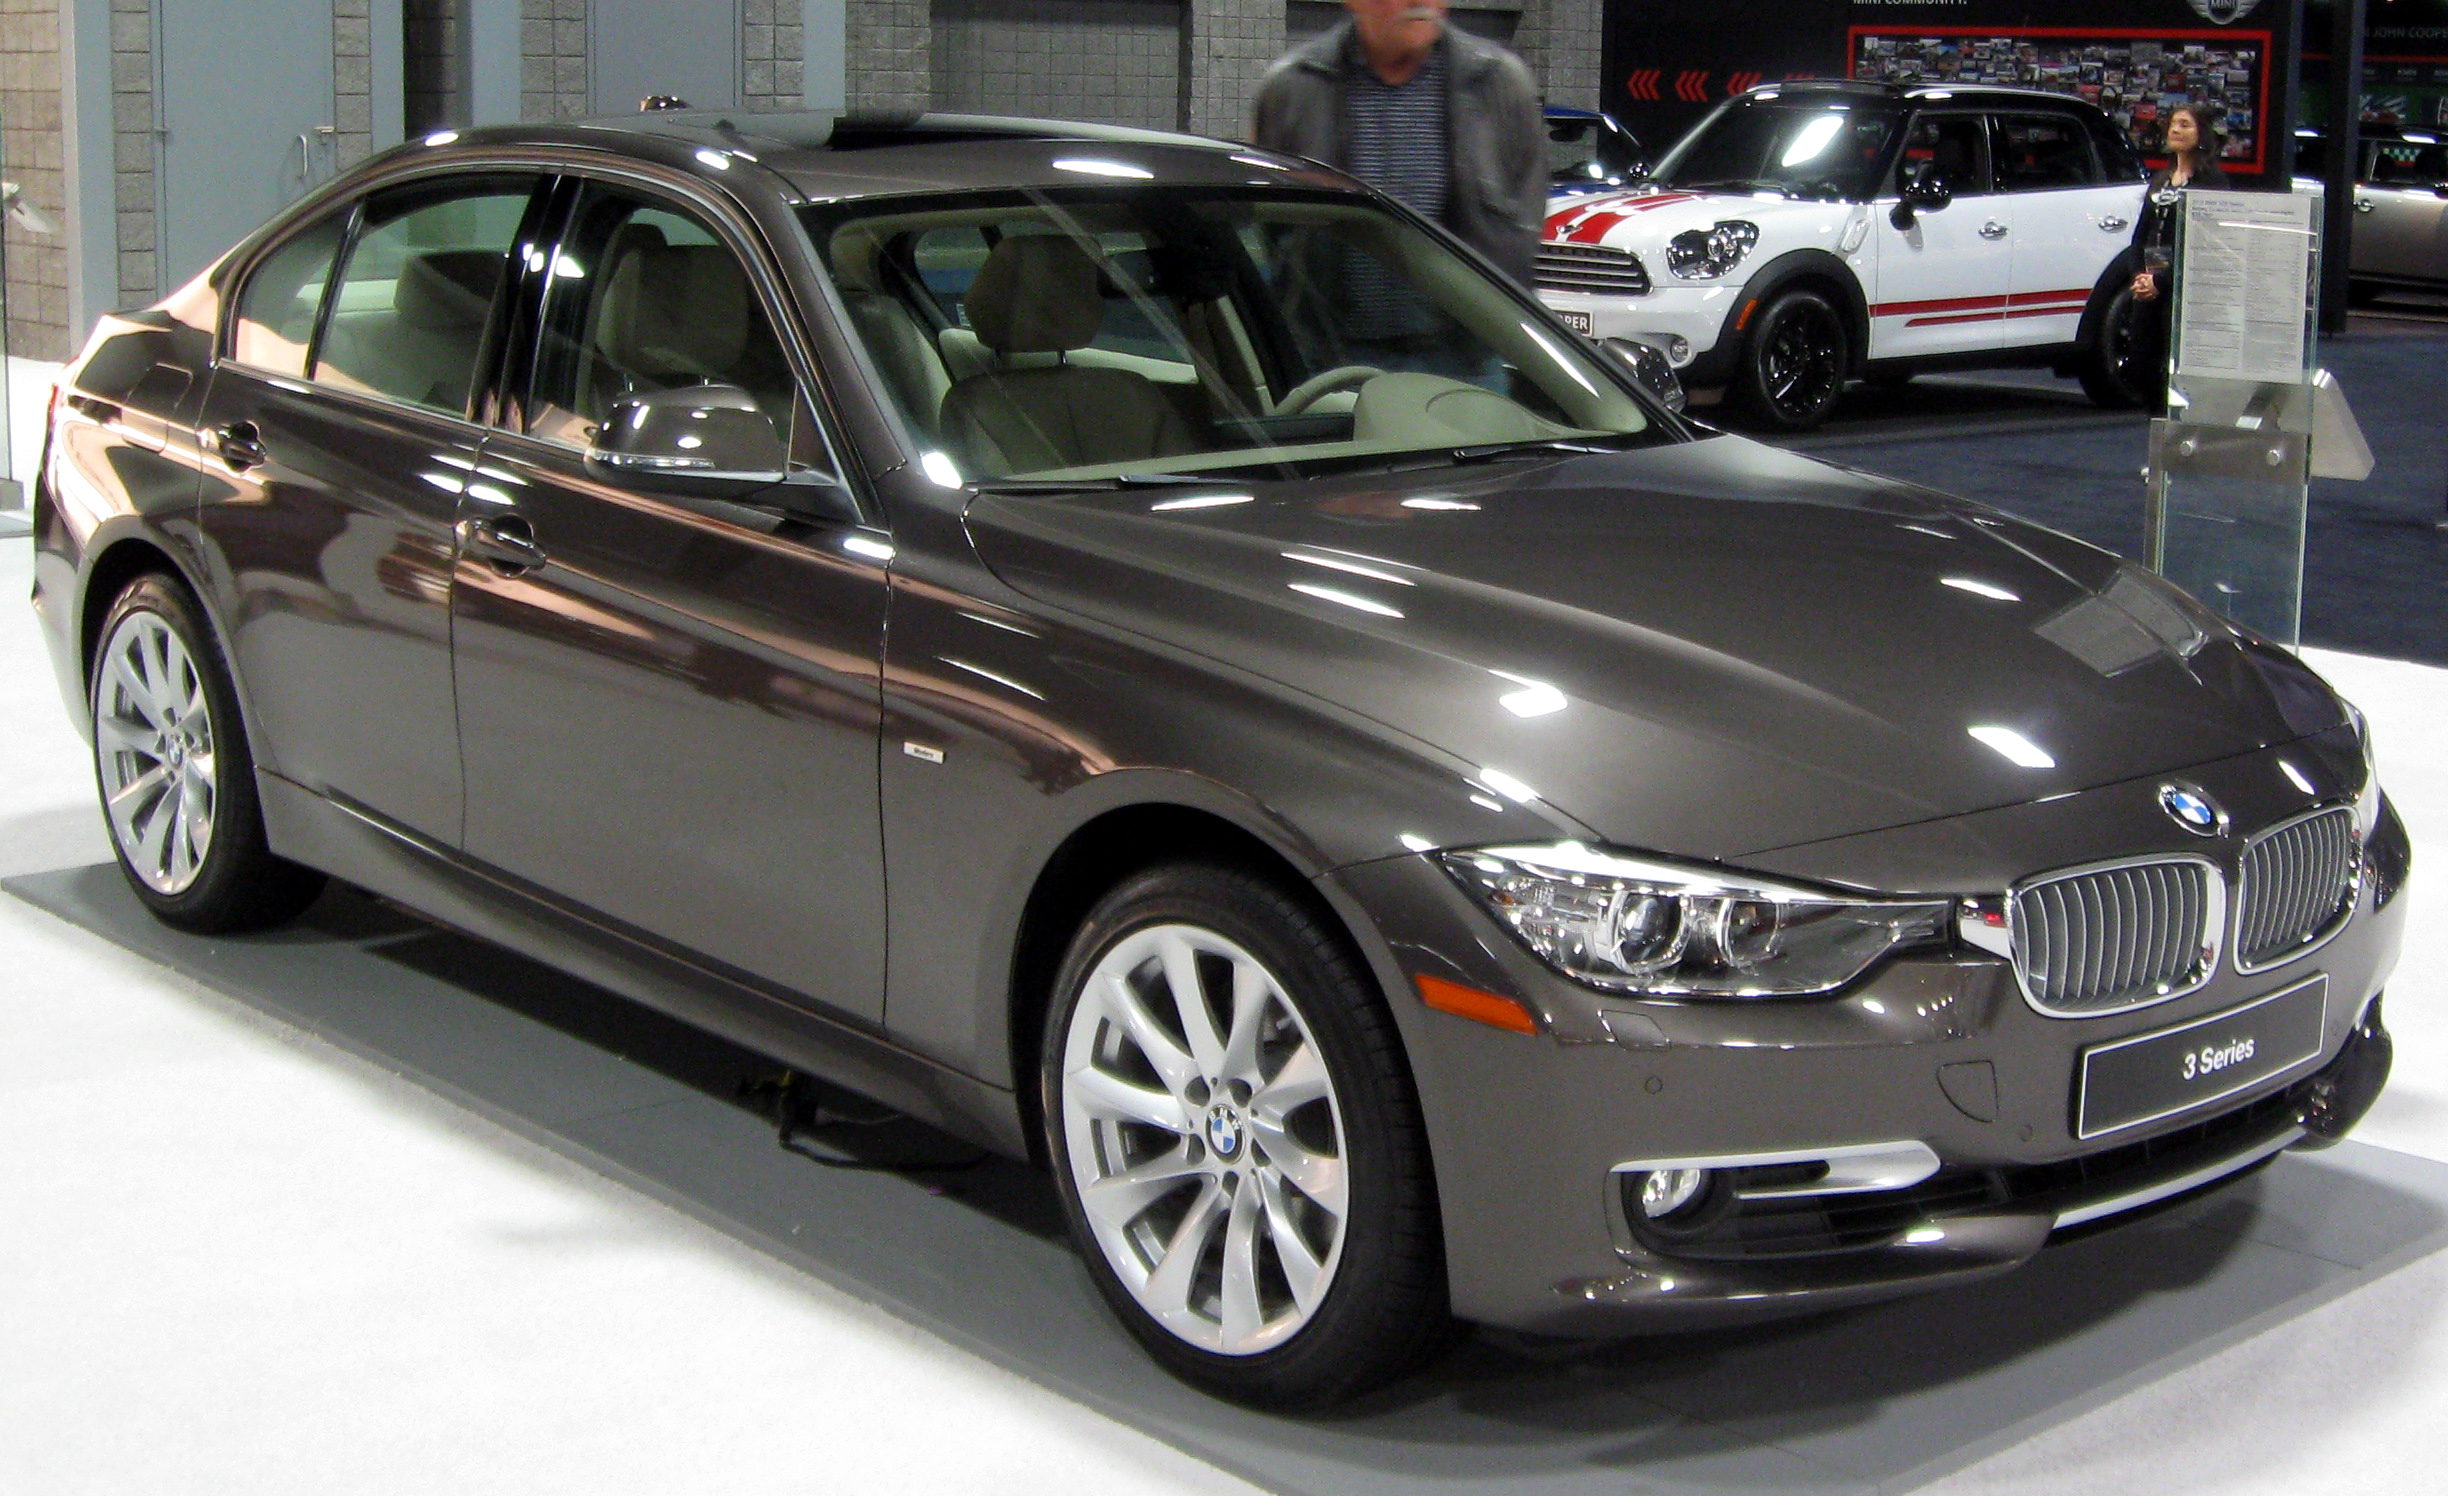 file 2012 bmw 328i sedan 2012 dc 1 jpg wikipedia. Black Bedroom Furniture Sets. Home Design Ideas